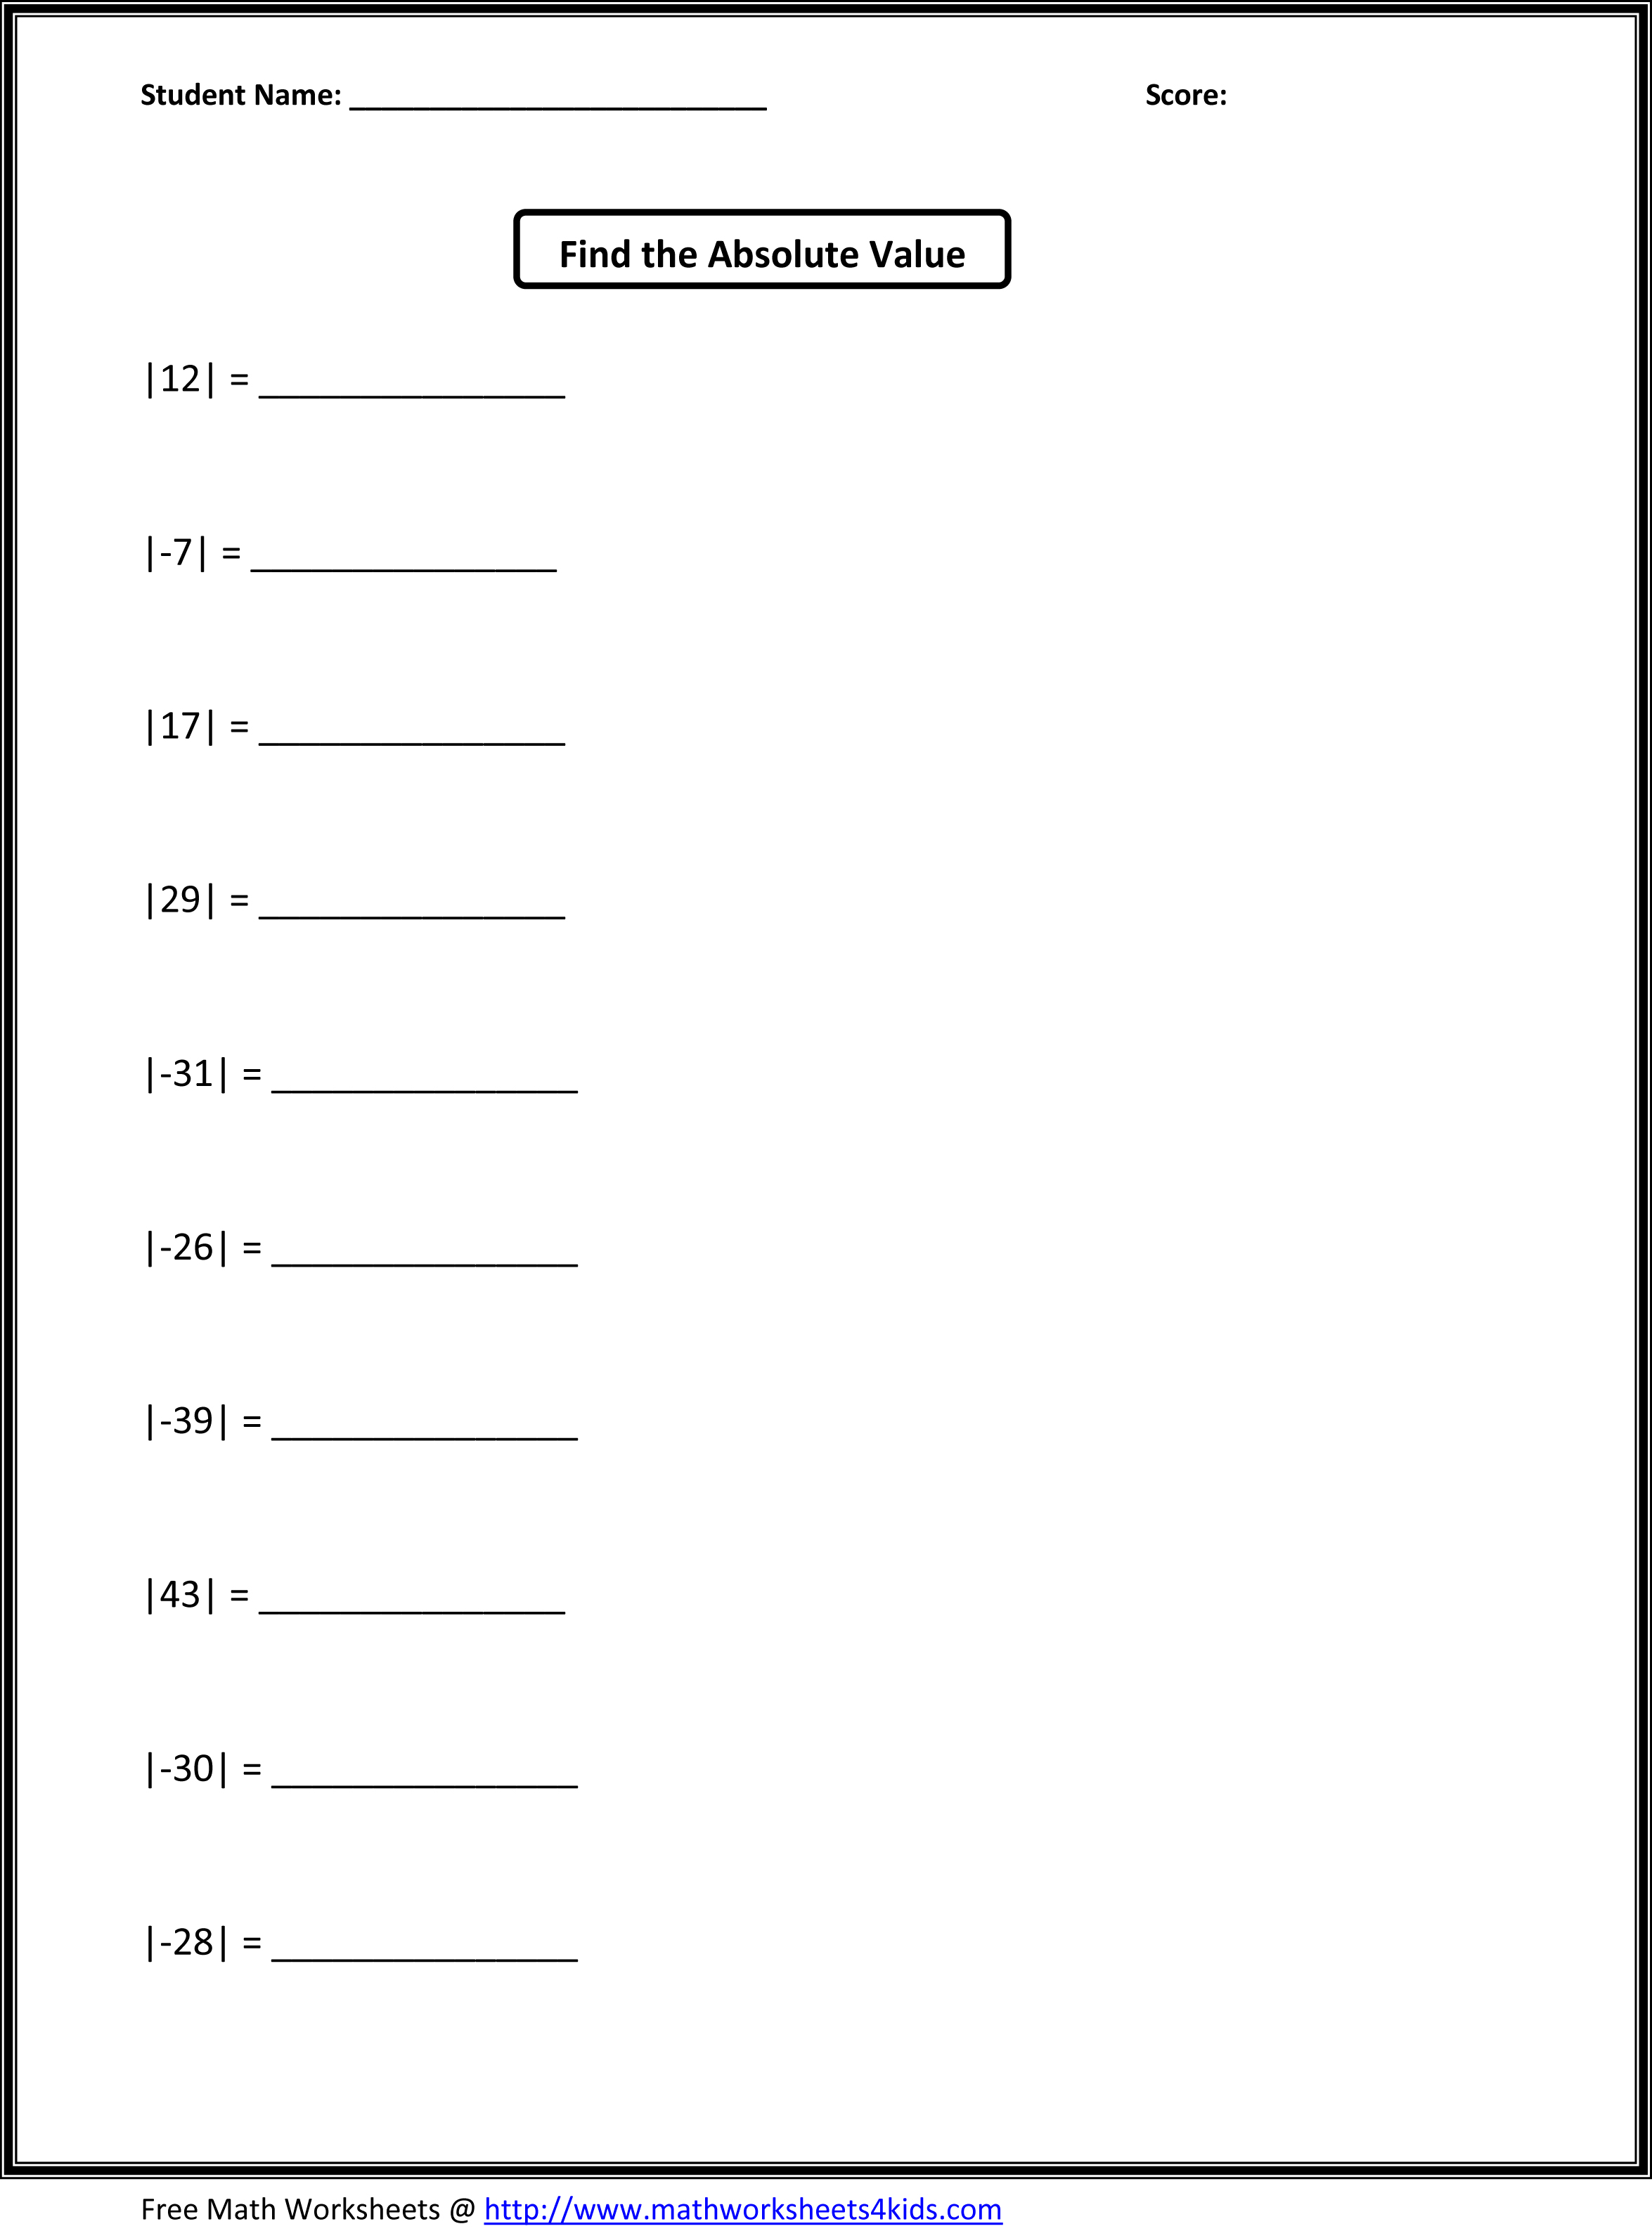 Math Function Worksheet For 6th Grade